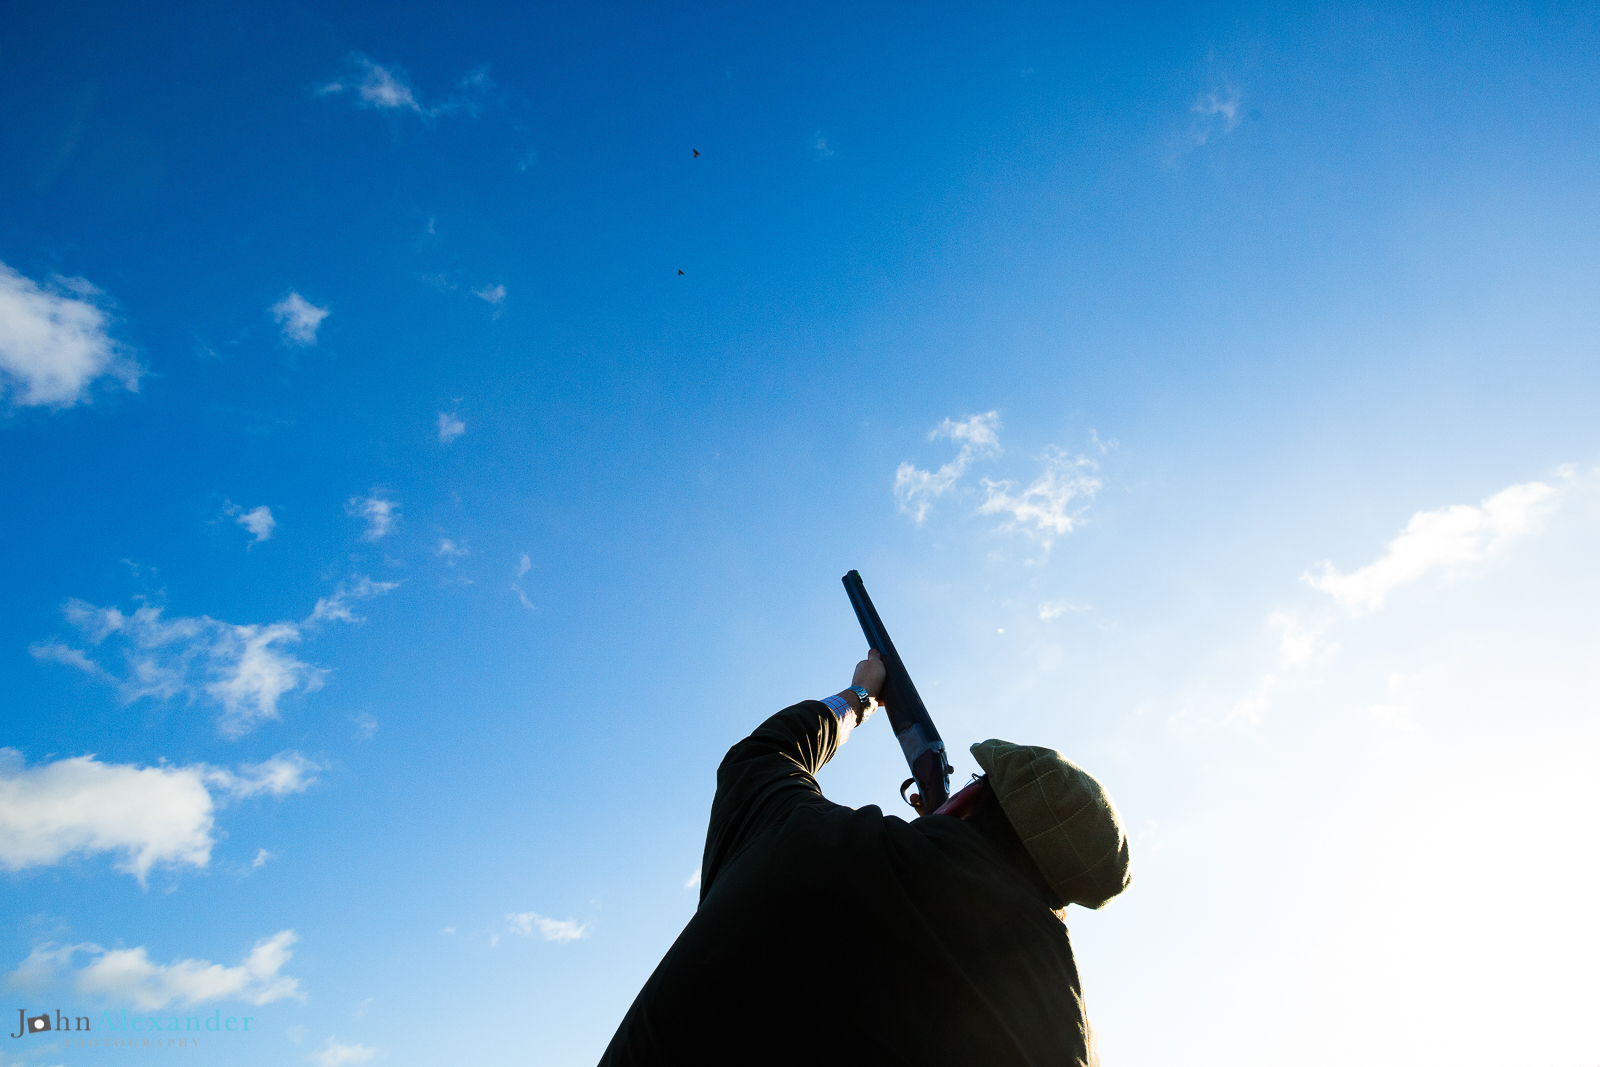 silhouette of gun shooting at pheasant in blue sky